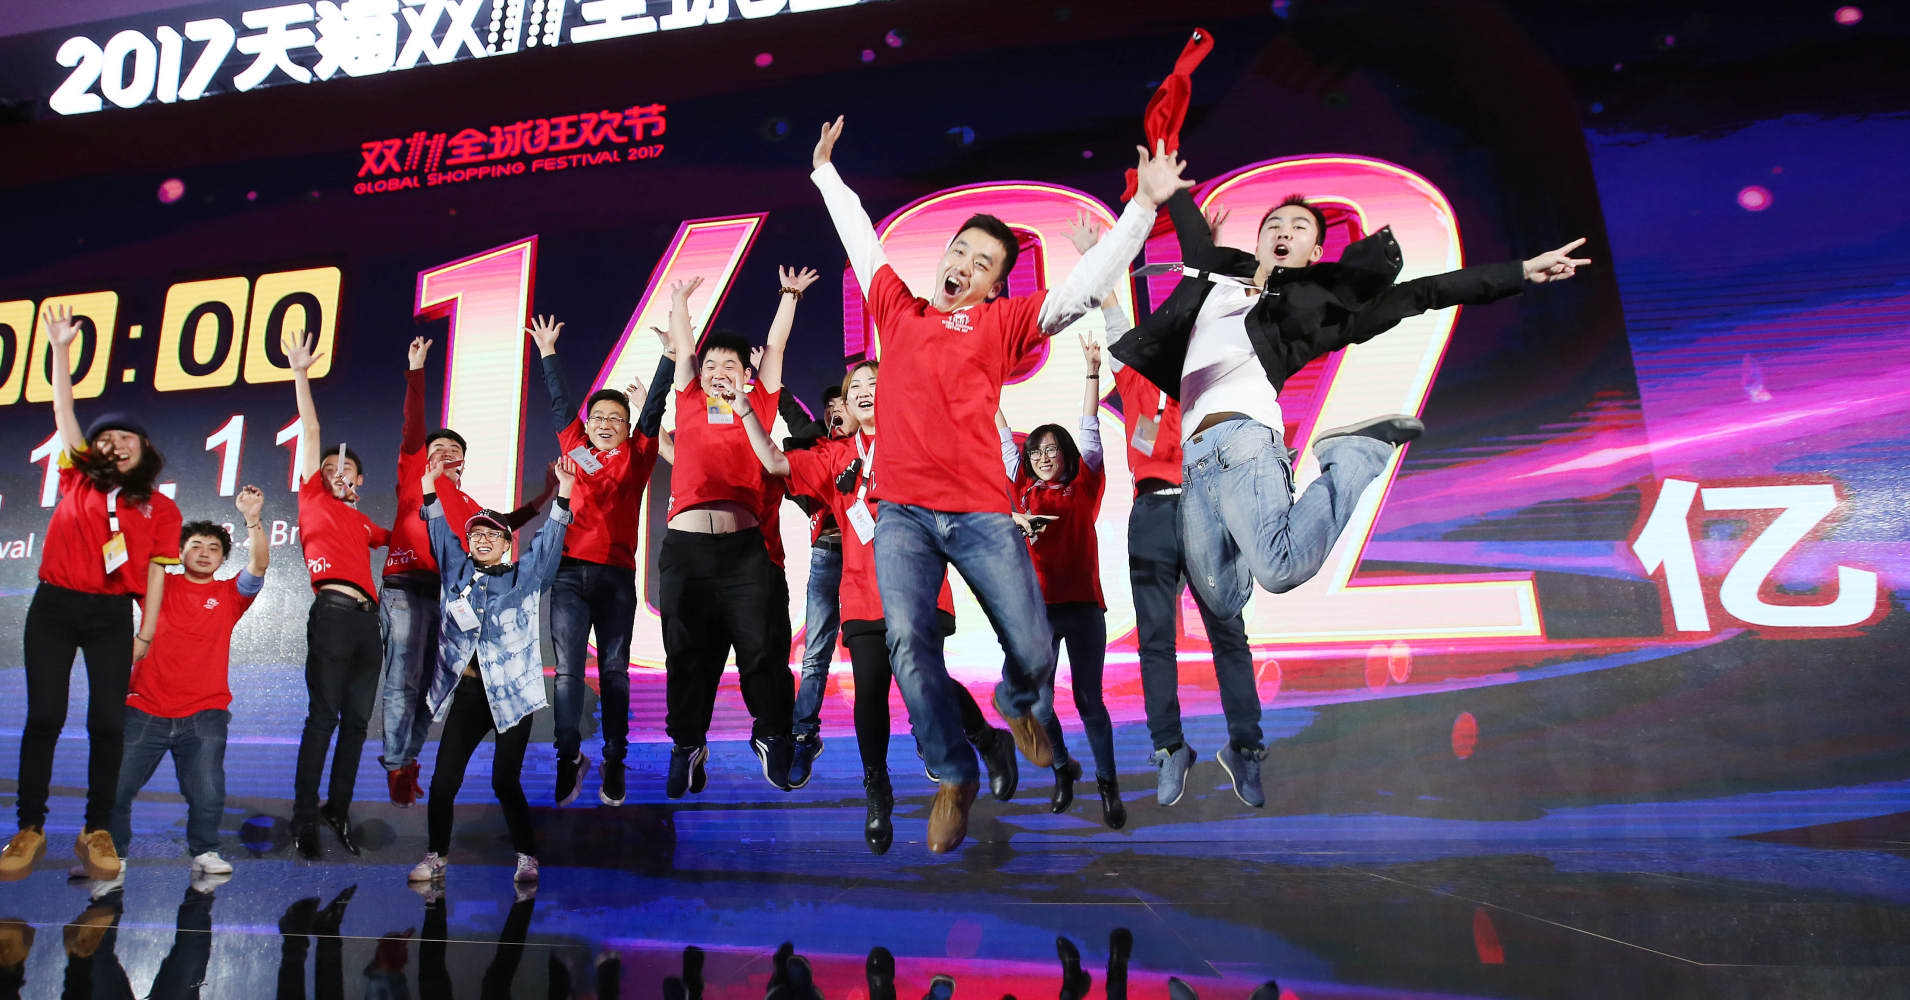 Singles Day: Alibaba on its plans for this year's 11:11 sales event